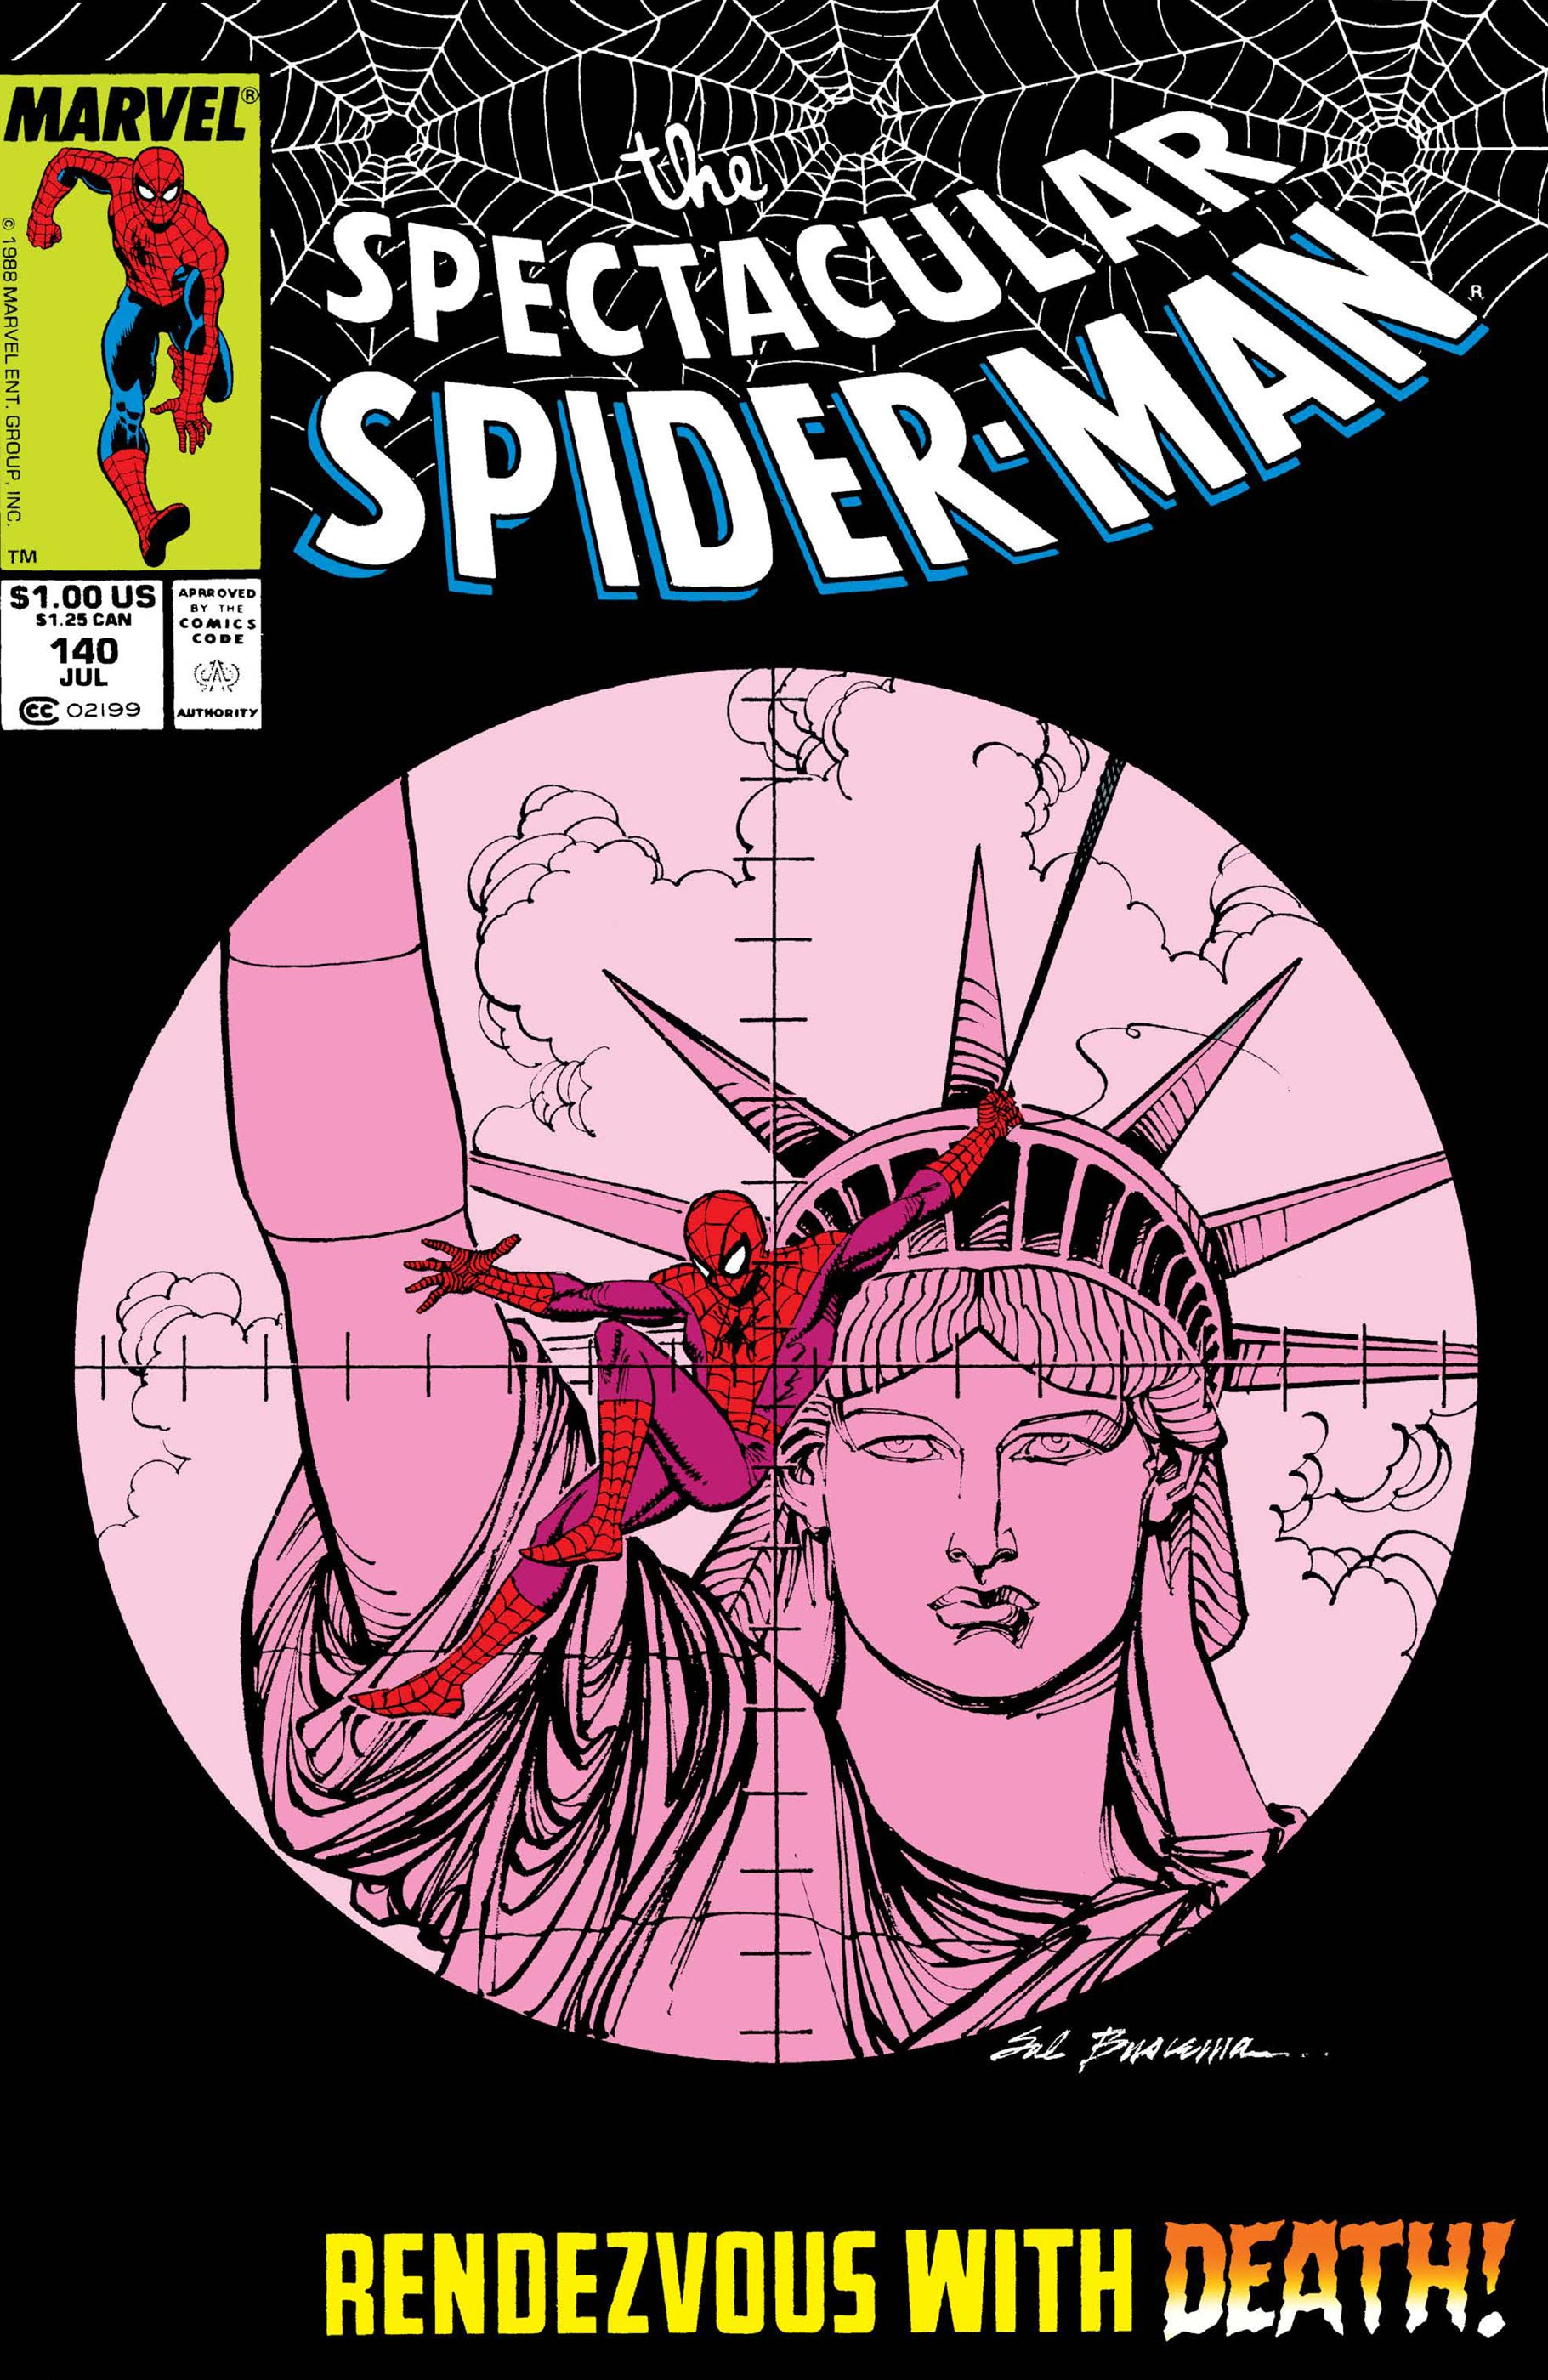 Peter Parker, the Spectacular Spider-Man (1976) #140